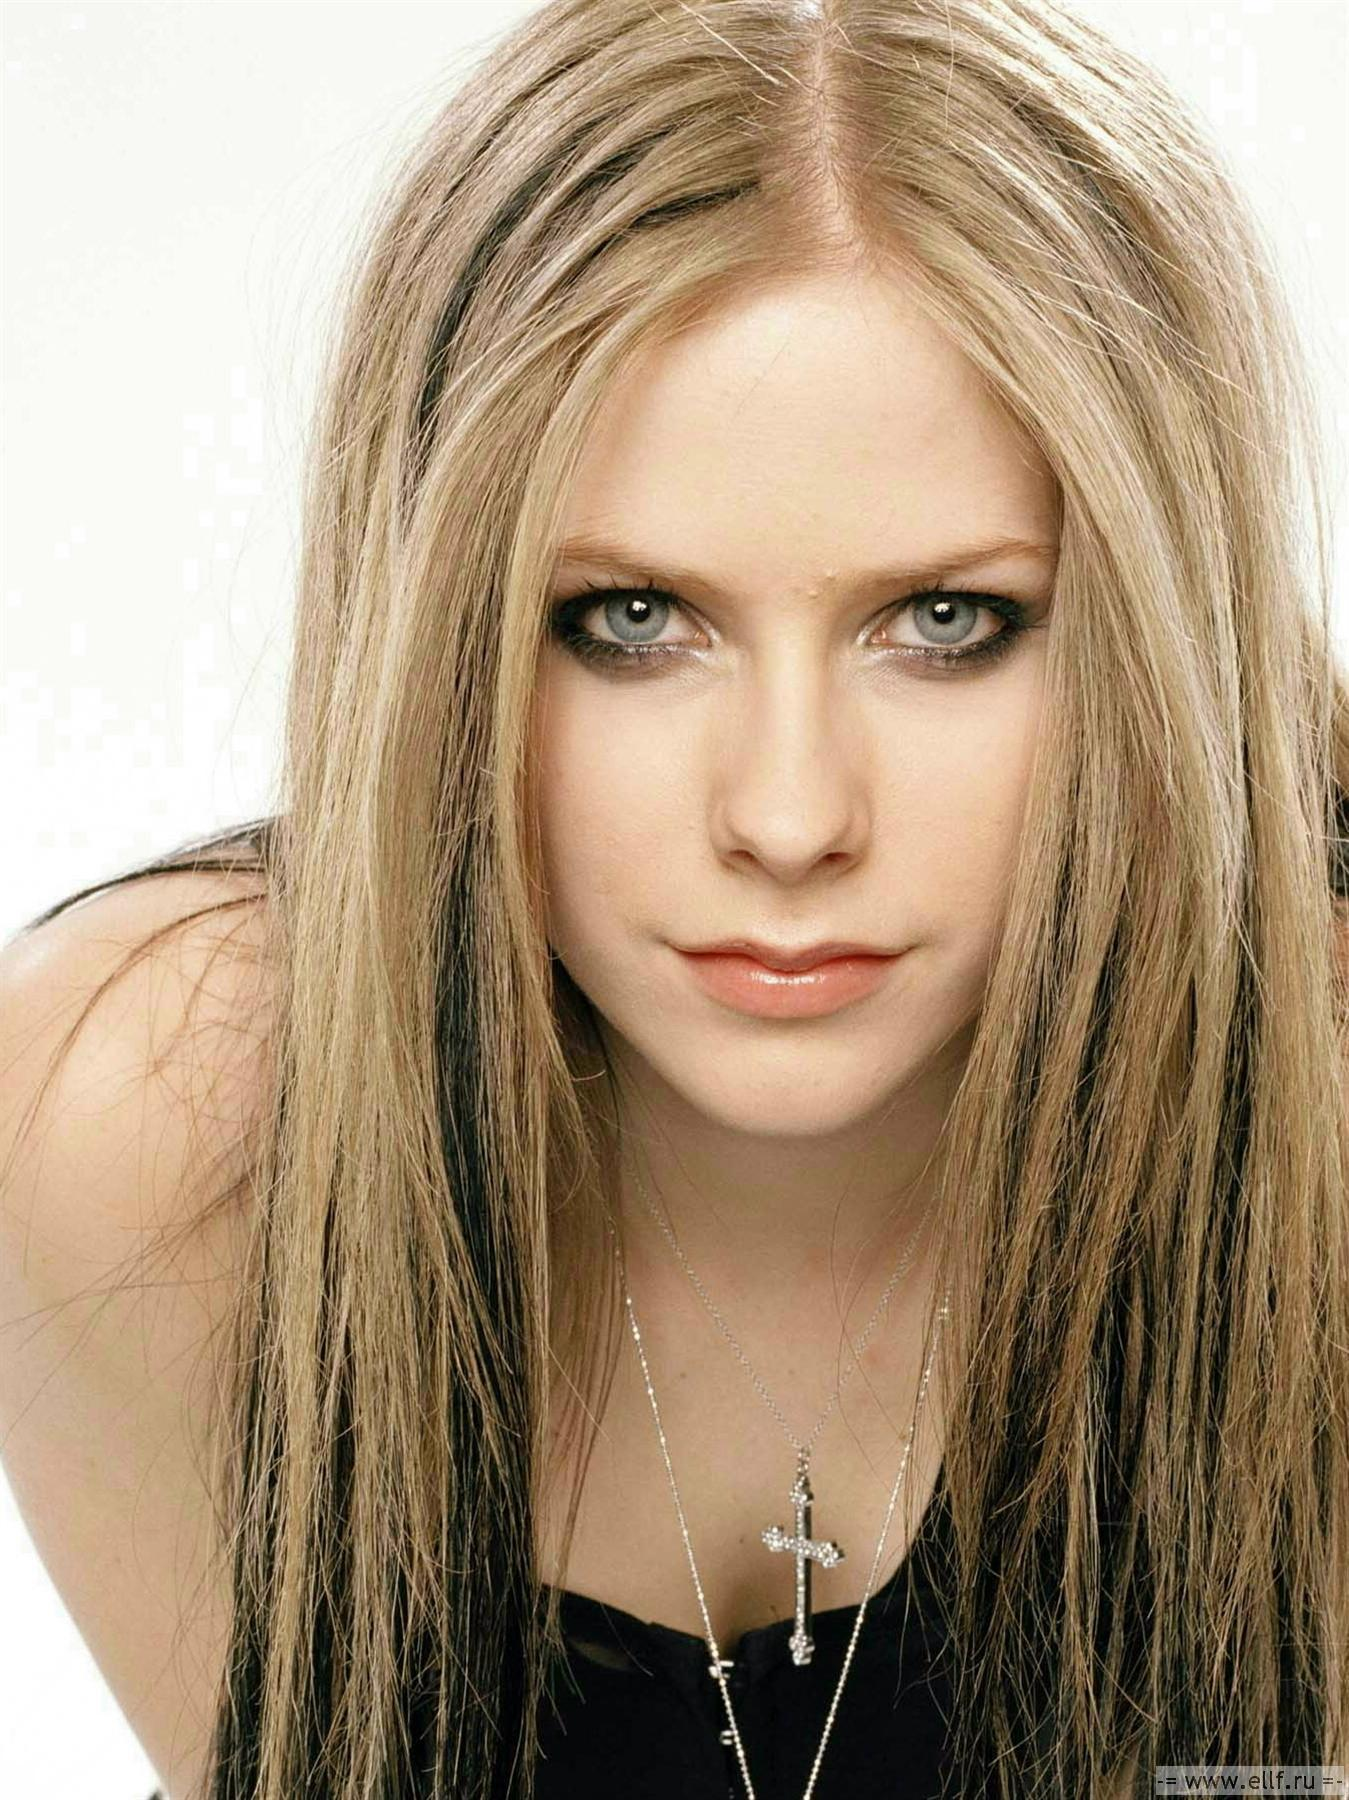 Avril Lovely Lavigne Avril Lavigne Photo 23496535 Fanpop